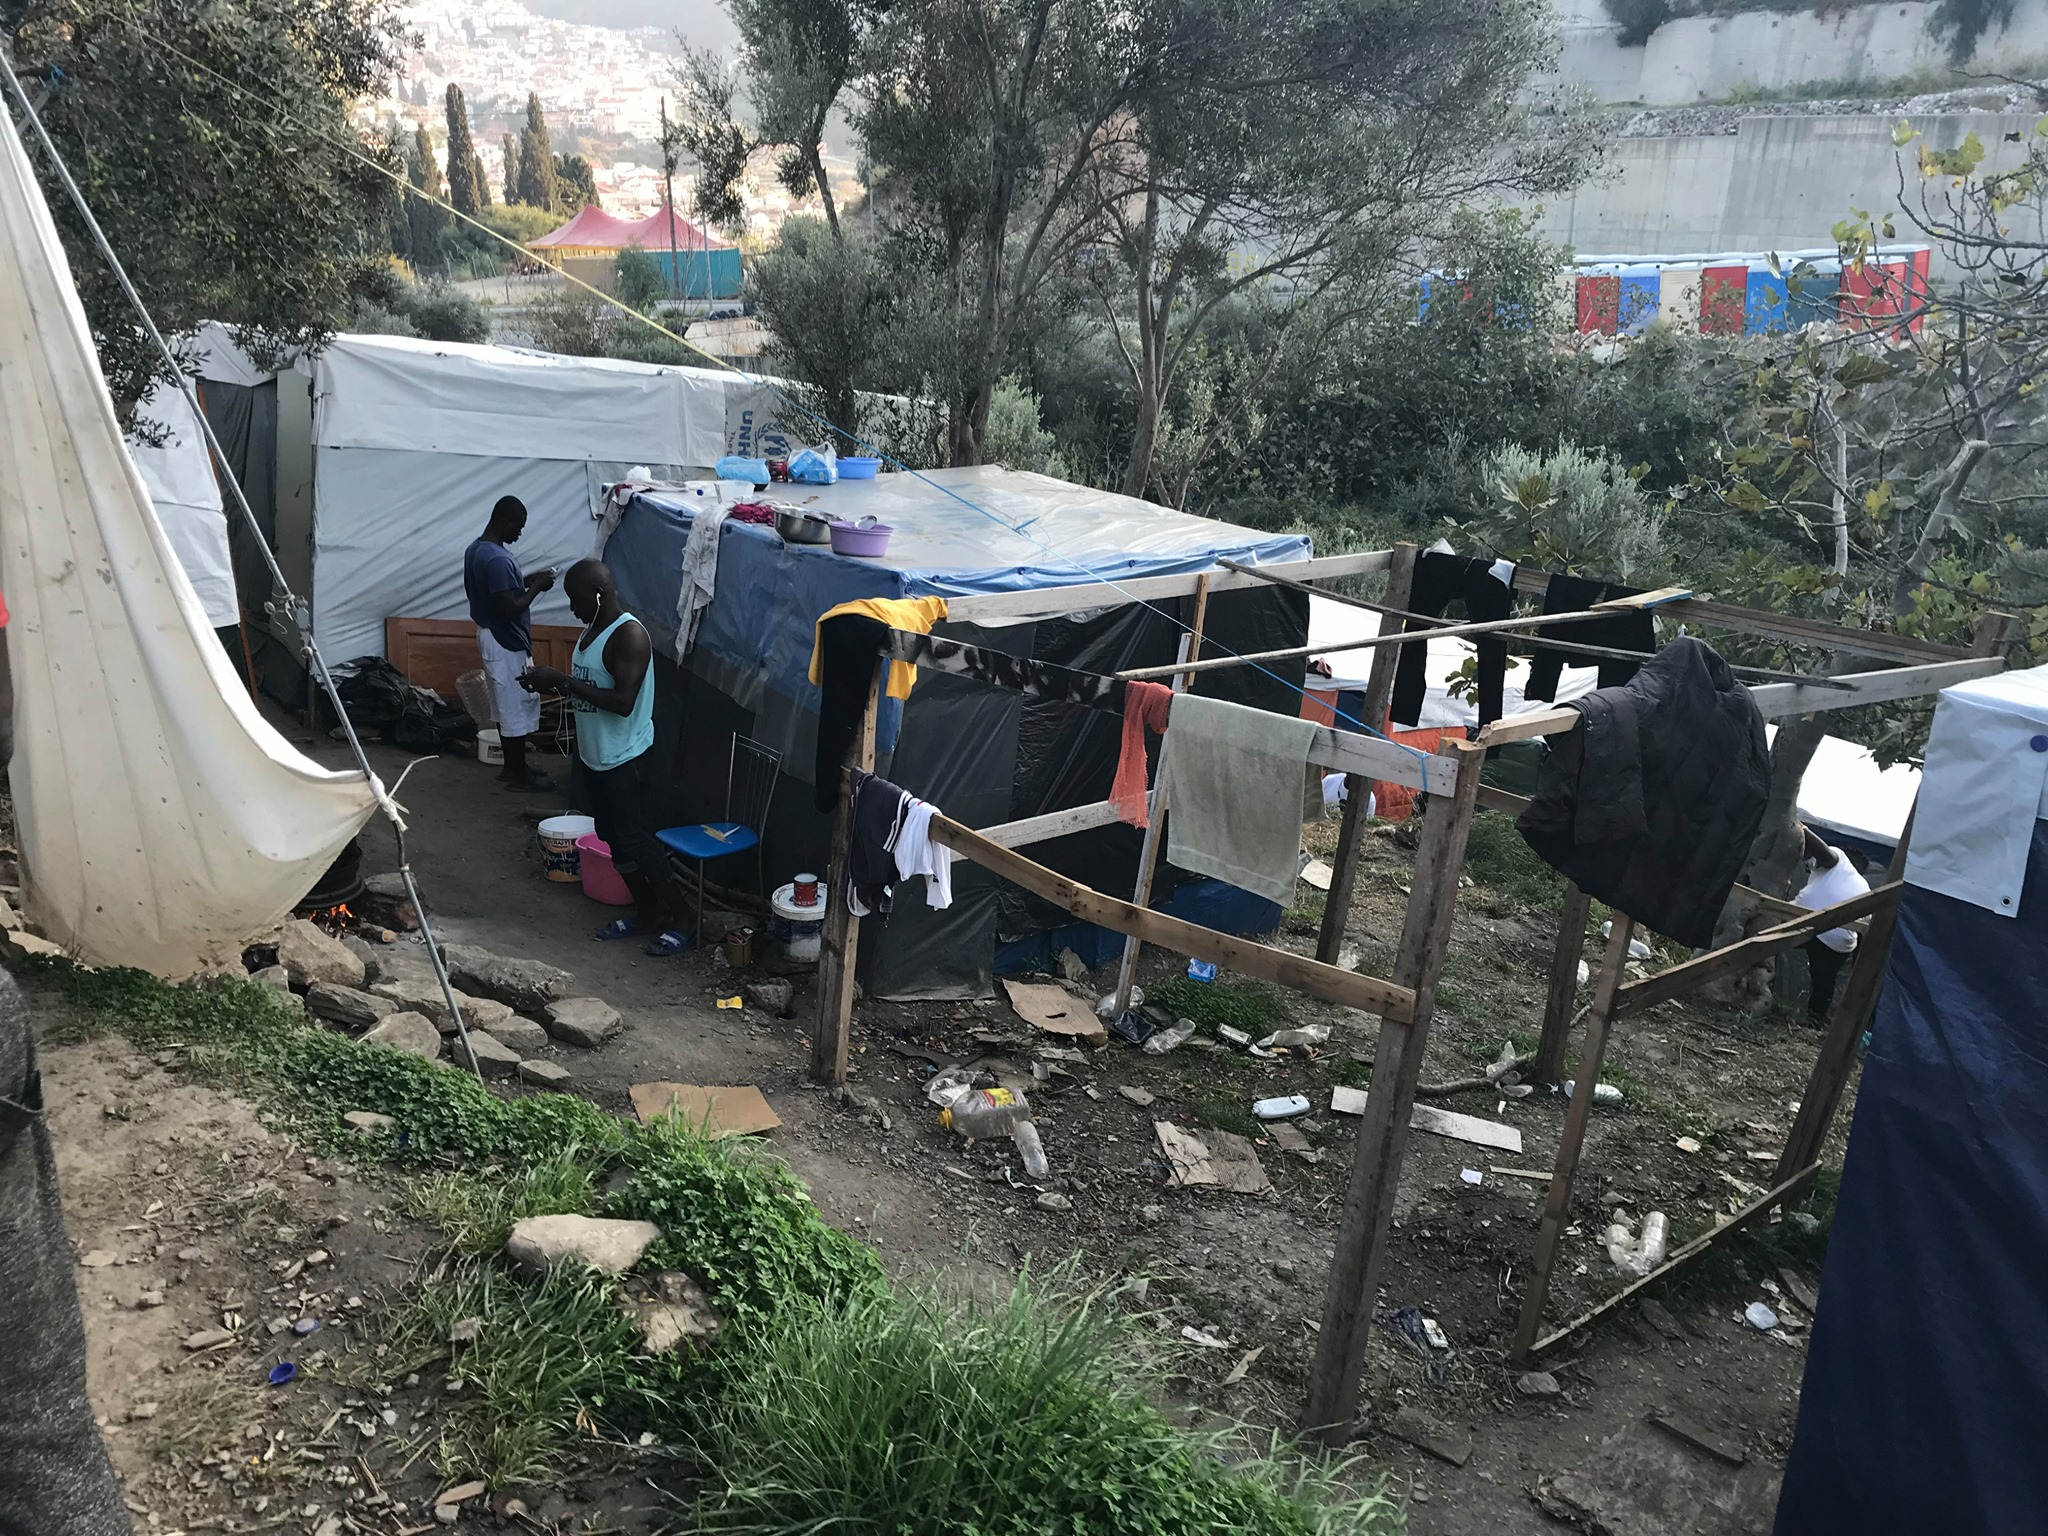 Samos Refugee Camp